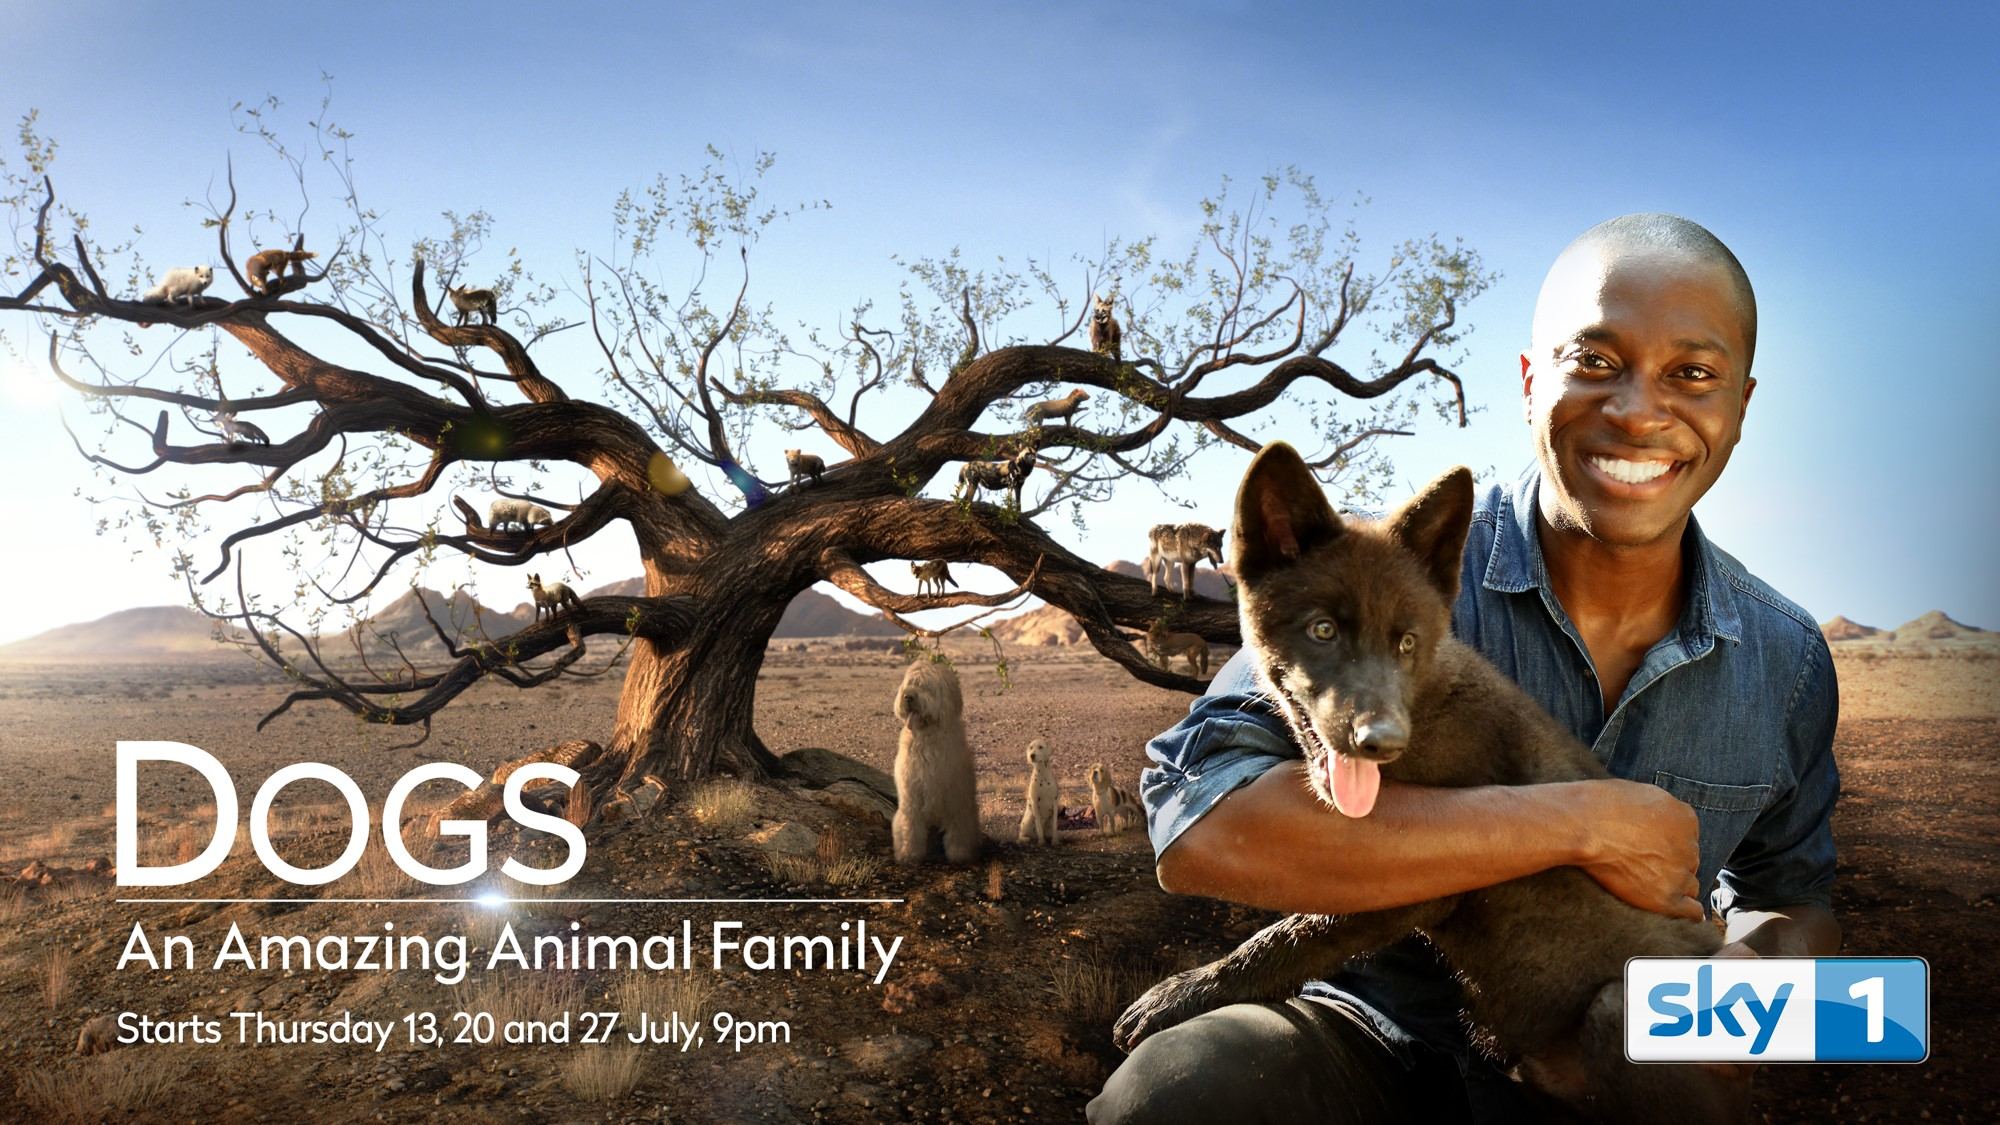 Dogs: An Amazing Animal Family series. - United Kingdom • 2016